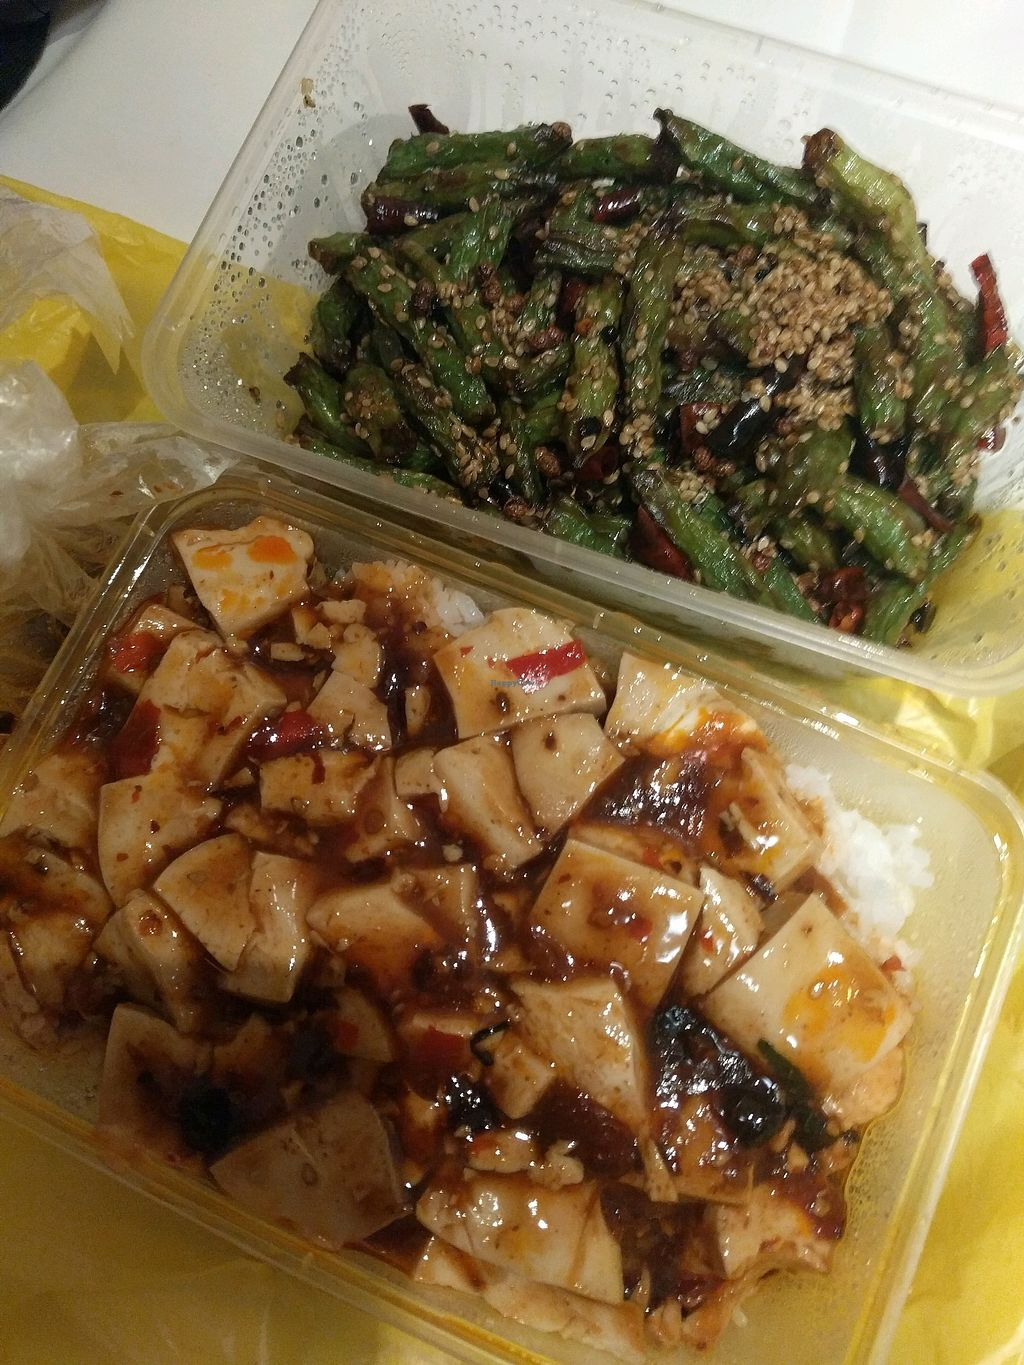 """Photo of Fu Yuan Ge Vegetarian Restaurant  by <a href=""""/members/profile/VeganSoapDude"""">VeganSoapDude</a> <br/>Delivery!  <br/> October 11, 2017  - <a href='/contact/abuse/image/18315/314171'>Report</a>"""